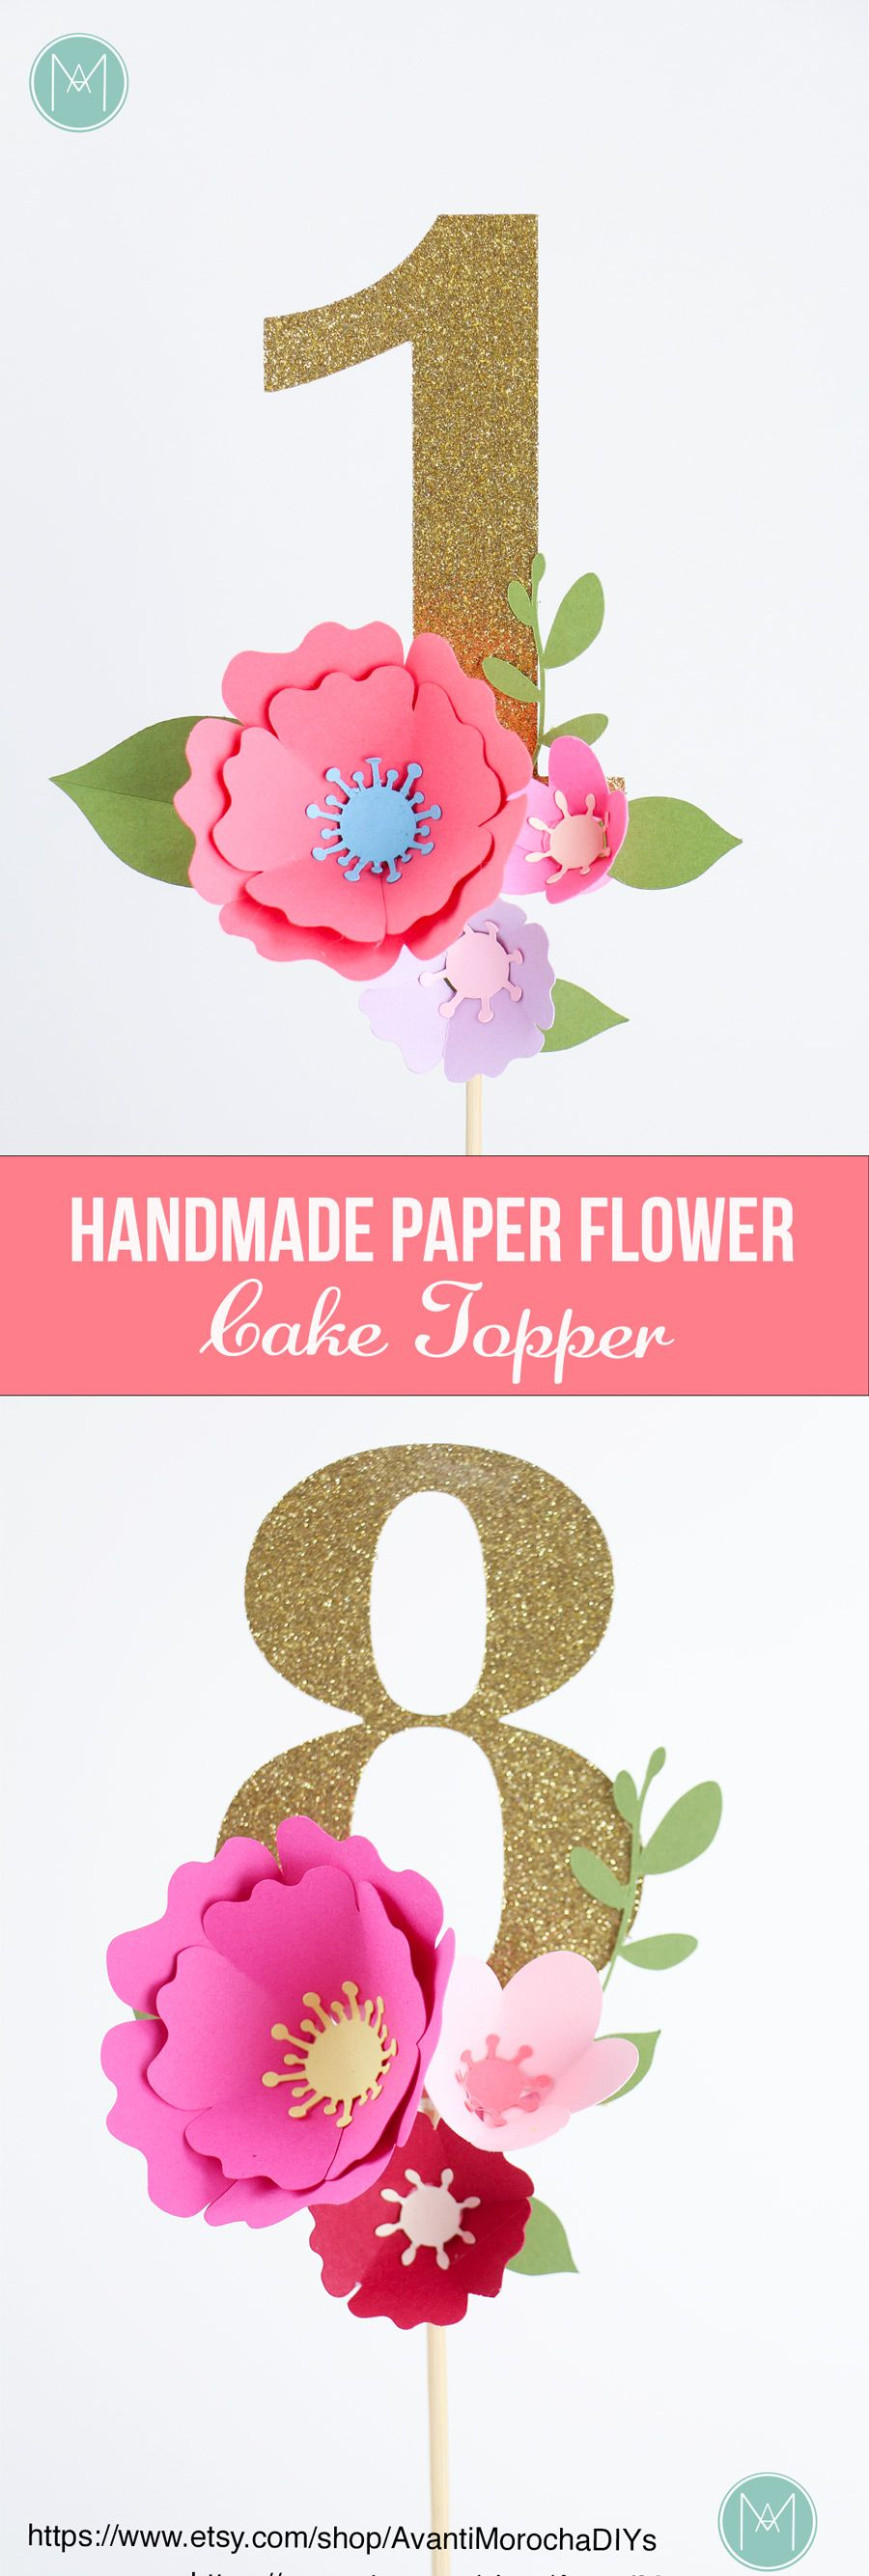 Use this gorgeous cake topper with awesome handmade paper flowers